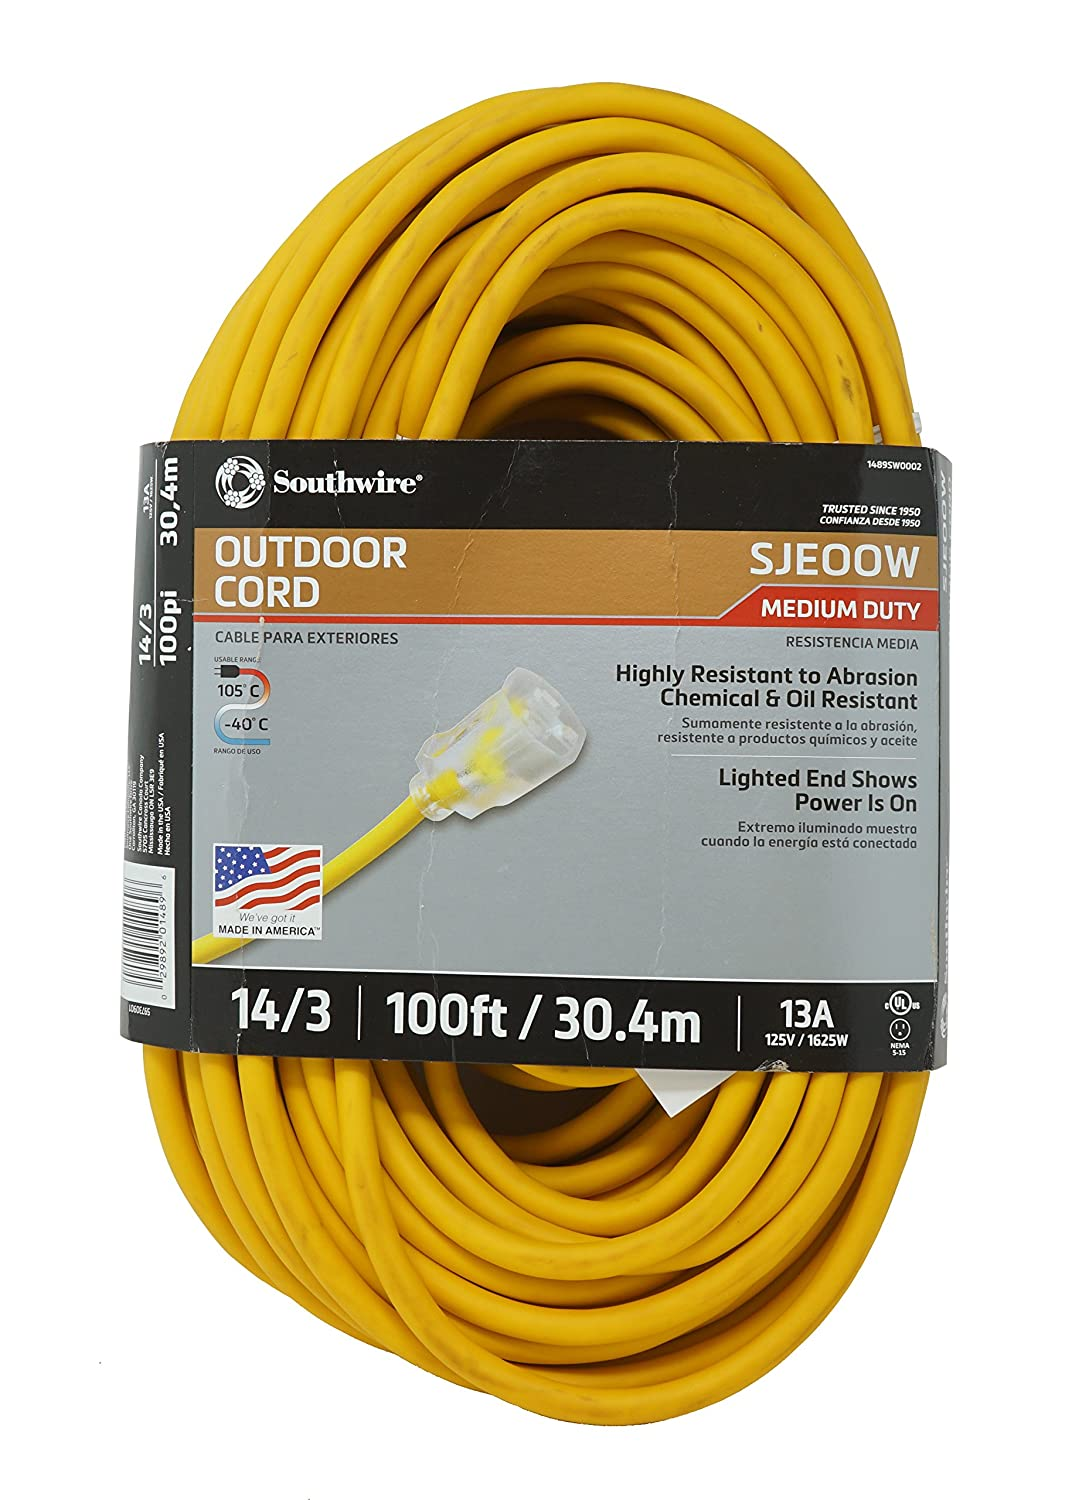 Southwire 01487 25' 14/3 American Made Insulated Outdoor Extension Cord with Lighted End, 3-Prong, Yellow 1487SW0002